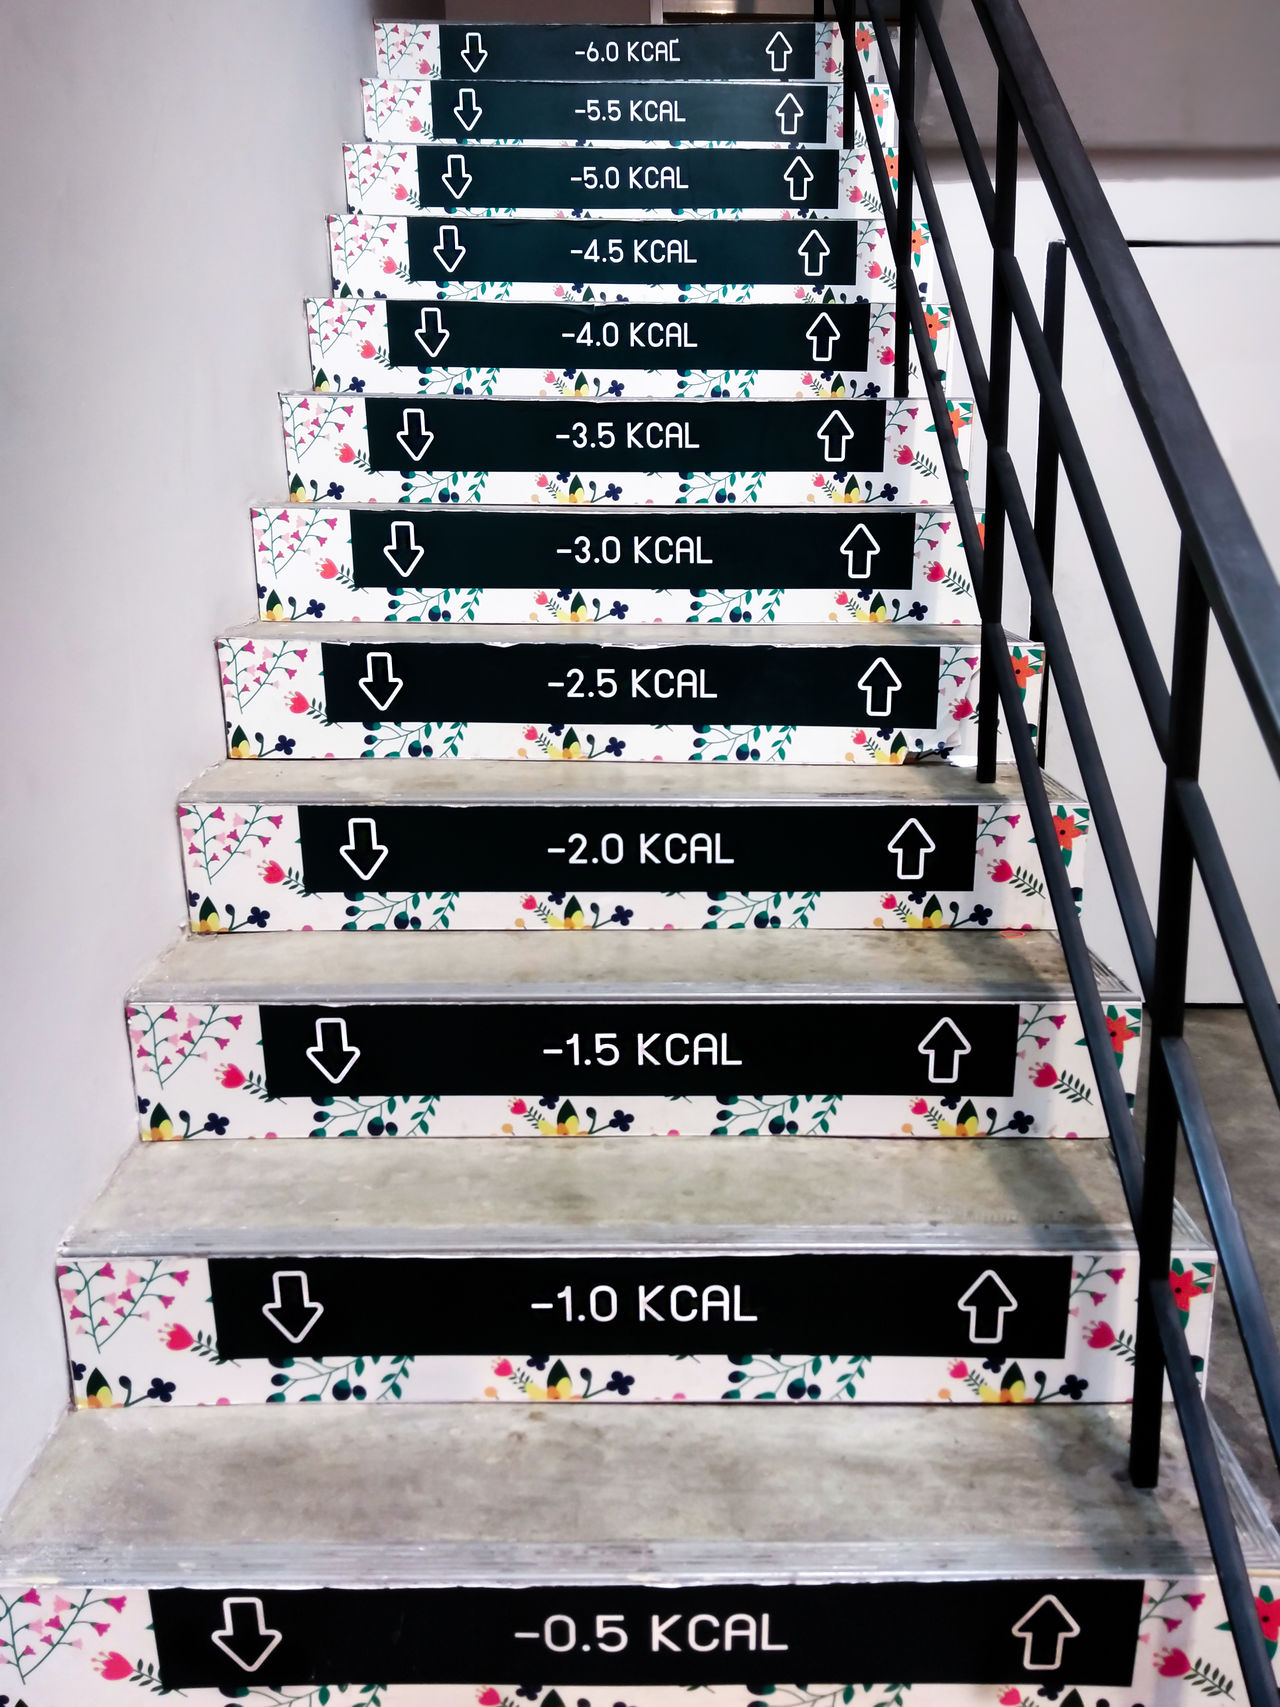 Funny Weight Loss Decal on a Staircase Abundance Arrangement Cat Choice Close-up Day Diet & Fitness Exercise Fit G Guardraild Healthy In A Row Indoors  Kcal No People Saturday Shelf Stack Staircase Up We Weight Gain